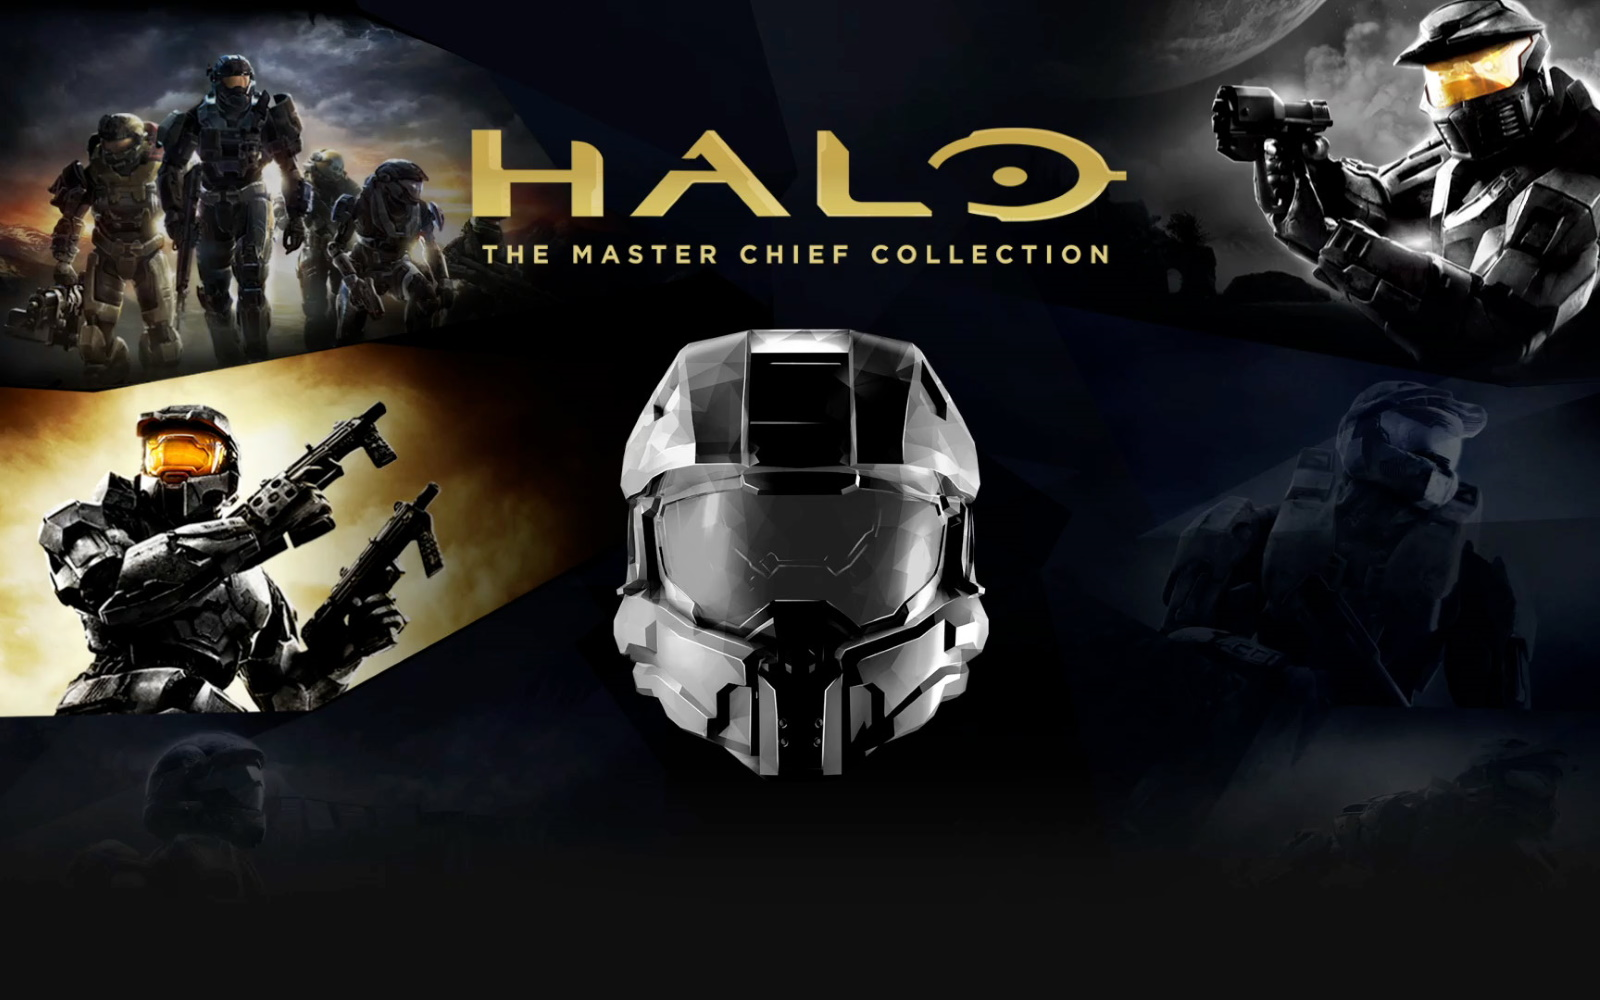 Halo 3 Coming To PC Next Week